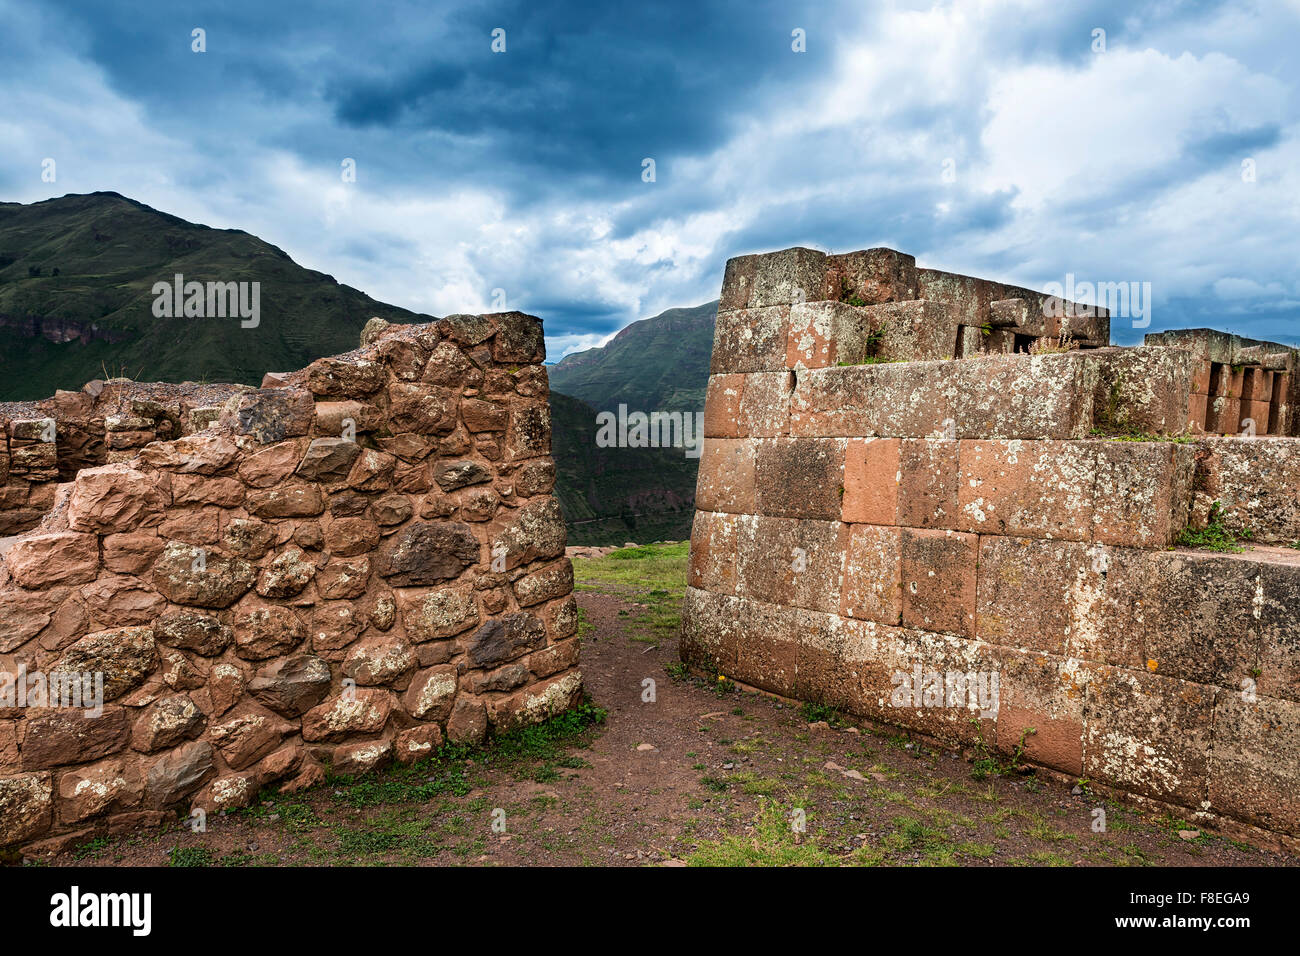 Inca masonry detail of walls at Pisac, in the Sacred Valley, Peru - Stock Image